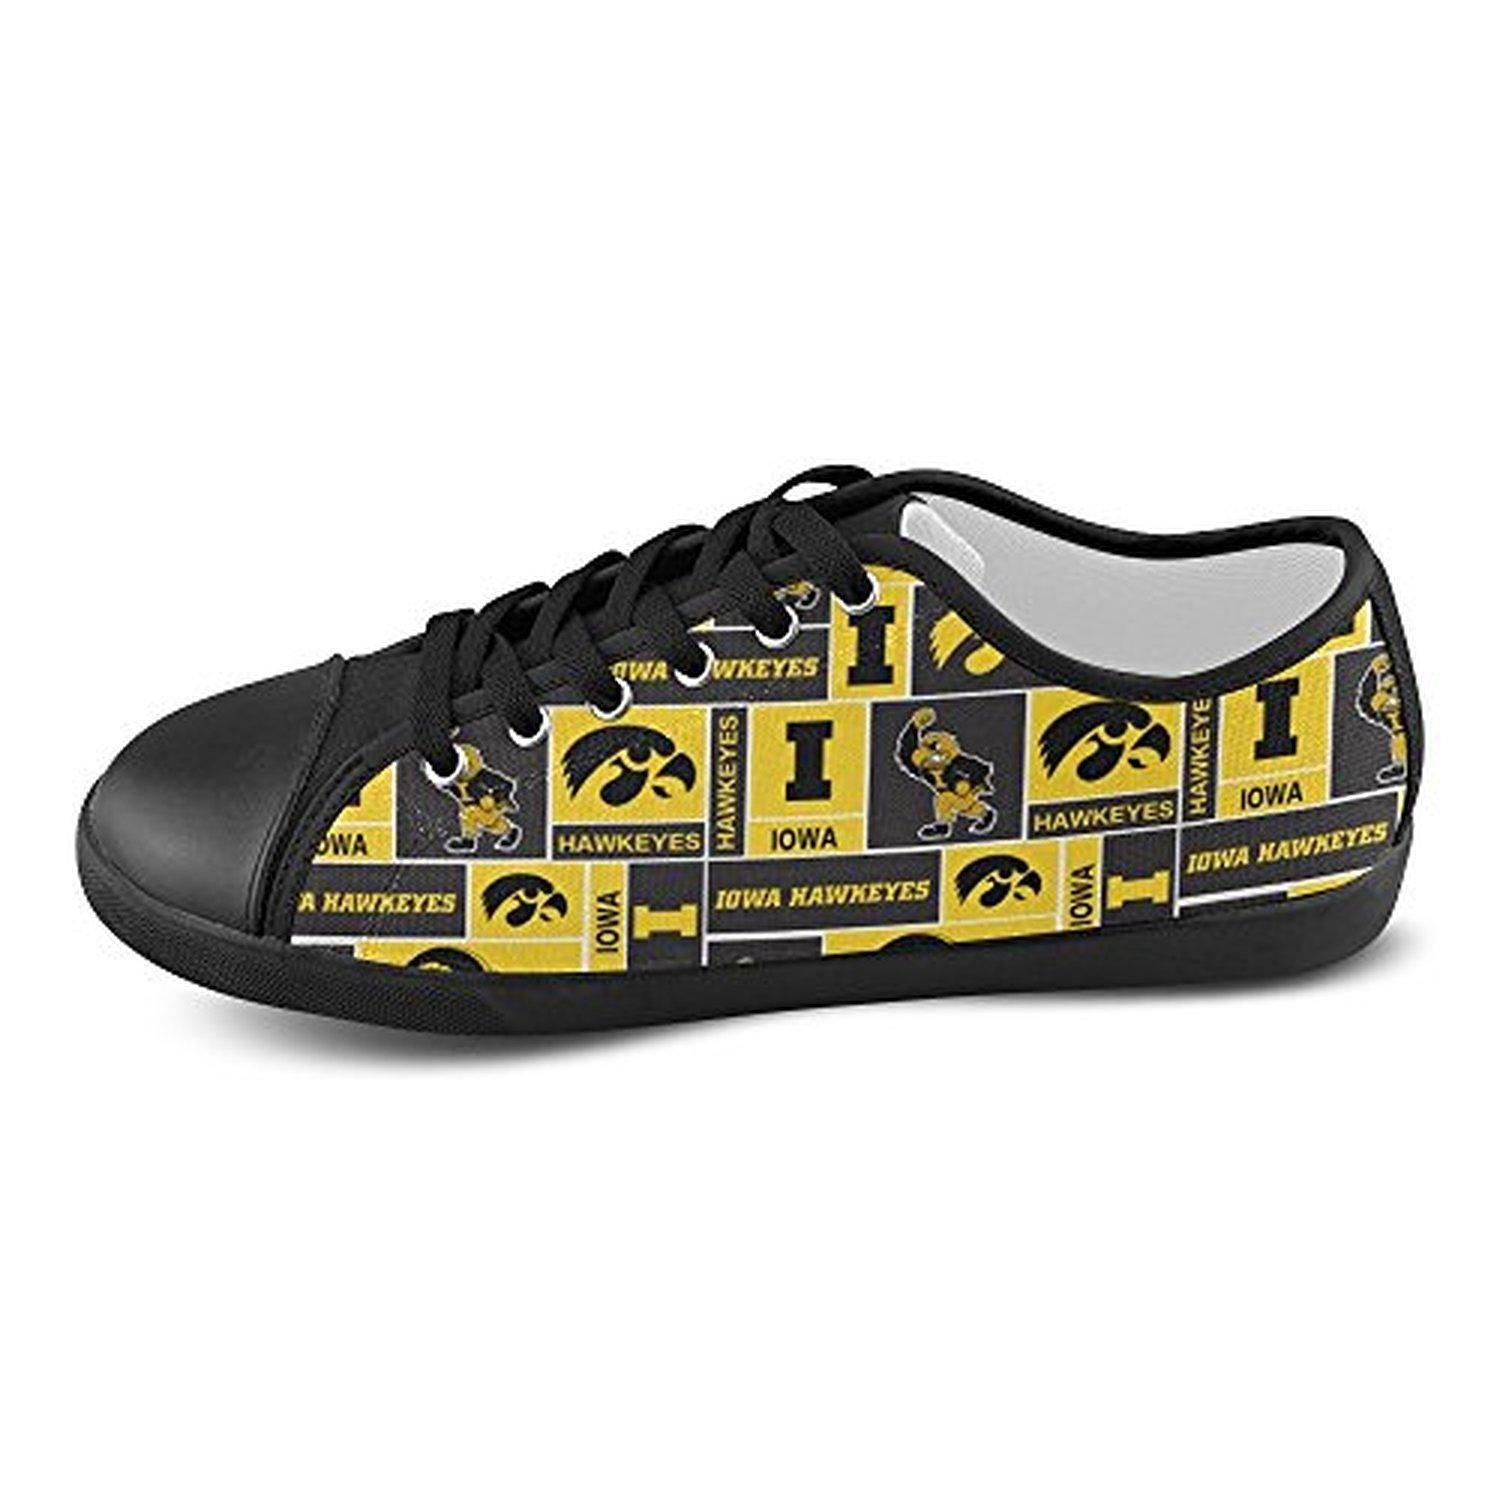 H-ome Art Ncaa Iowa Hawkeyes Men's Low-top Lace-Up Canvas Shoes Casual Sneakers ,Black